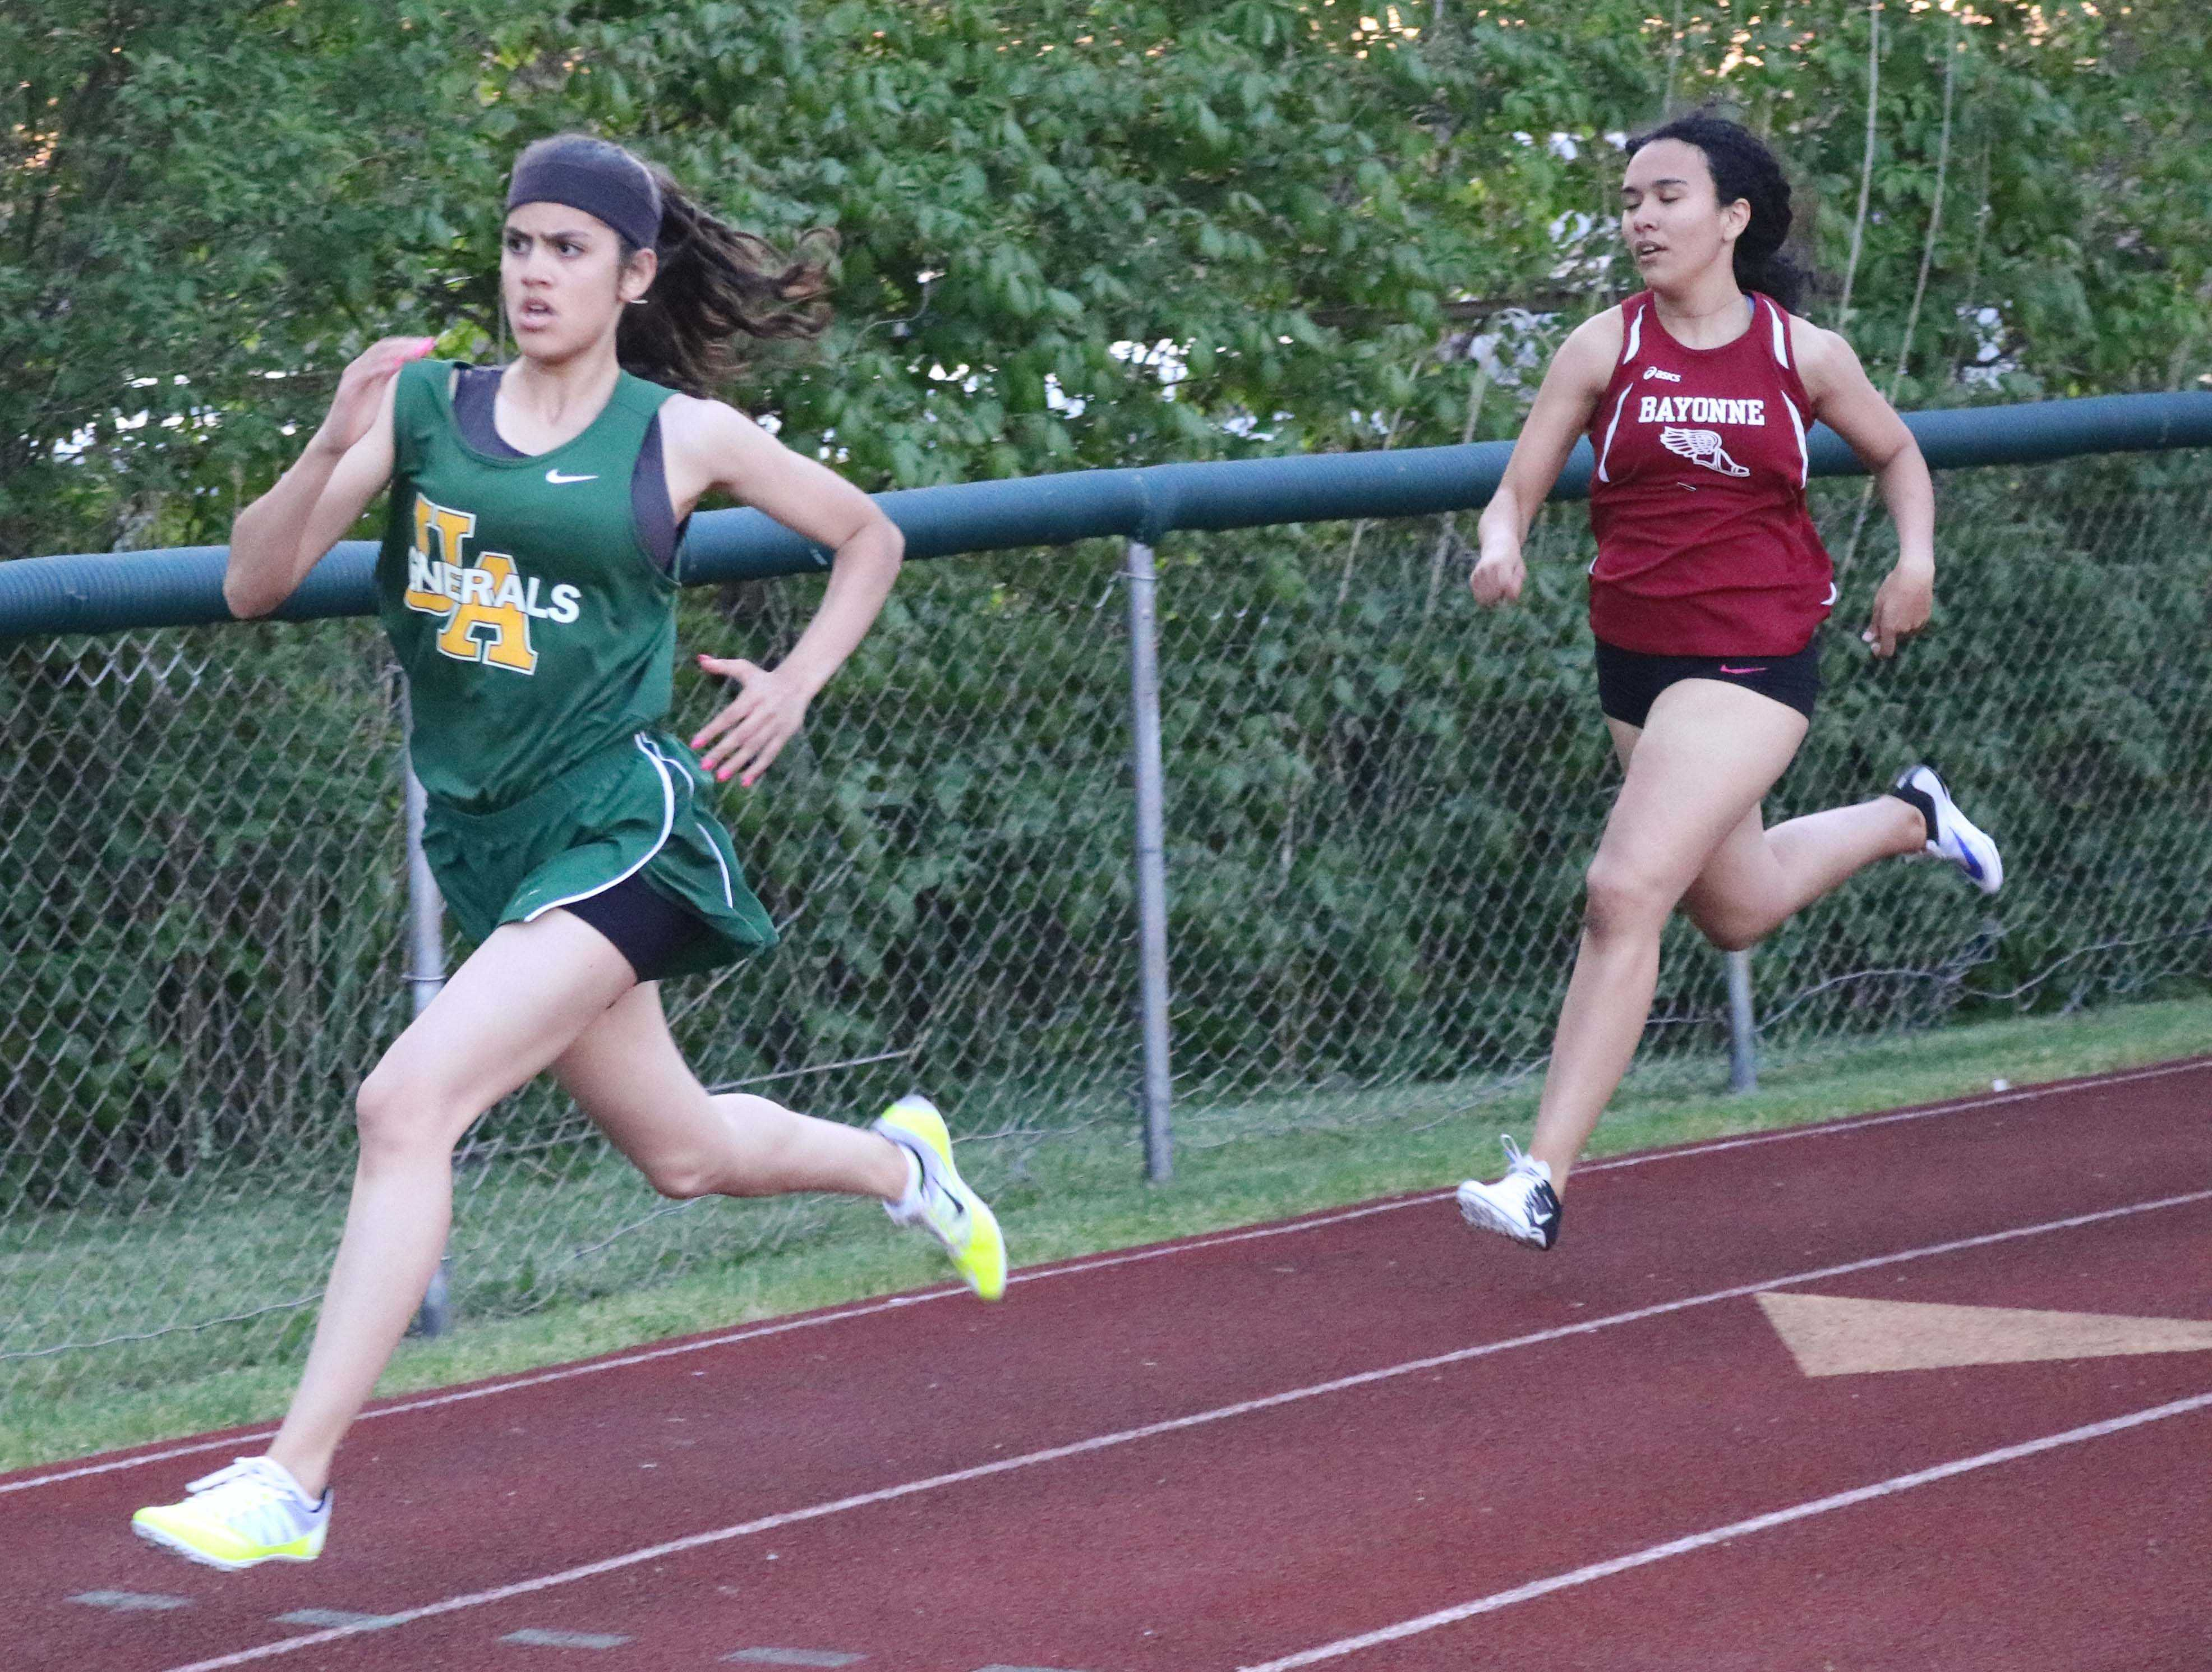 Freshmen Michael Tapalla (top) and Tiffany Ortiz (bottom) run in the 400-meter at the Husdon County Track Coach Association Championships. The freshmen have been a highlight of the spring track season. Photo by Angel Guzman